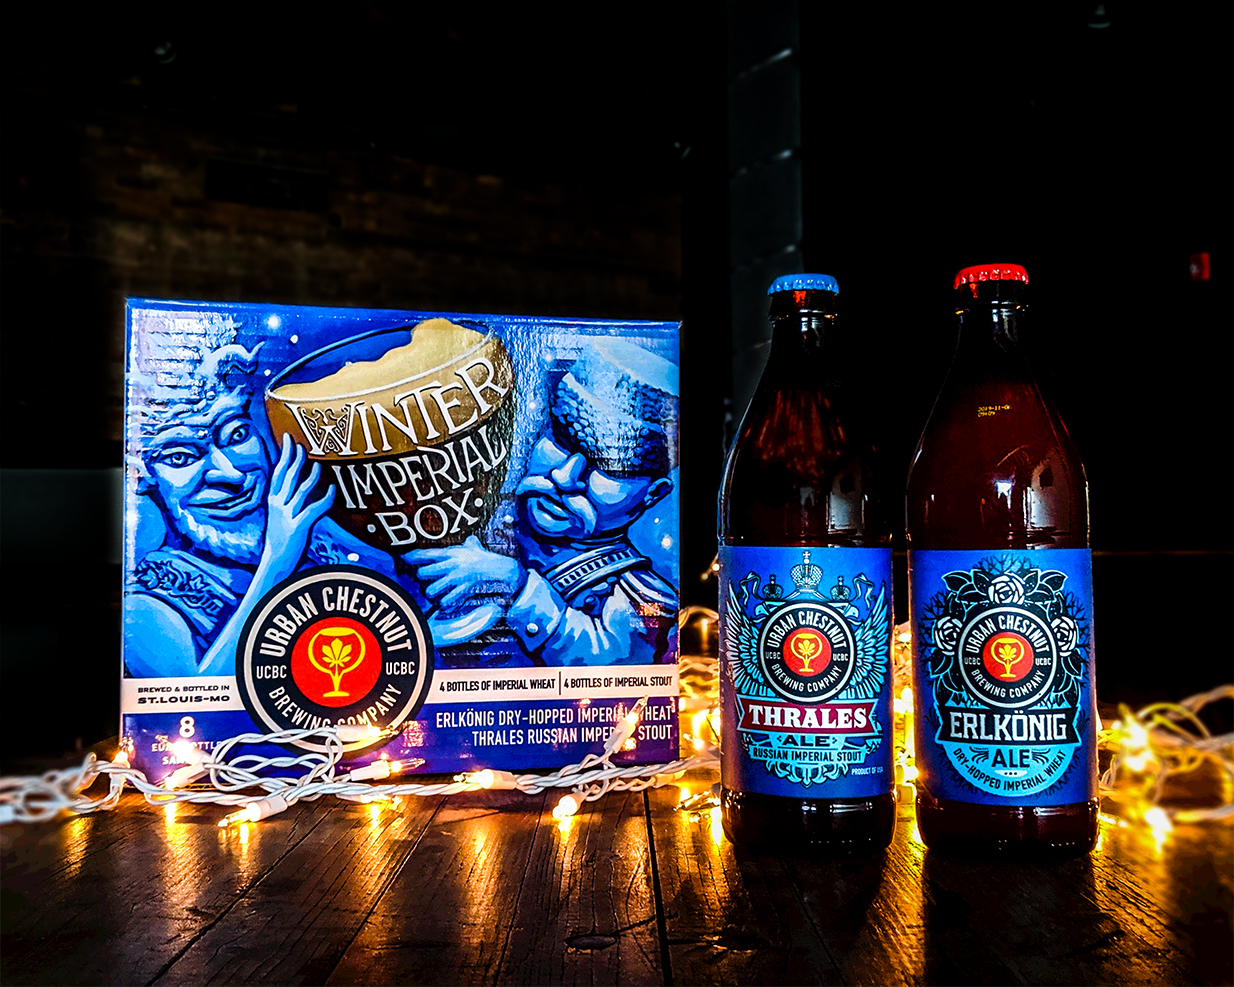 Urban Chestnut's Winter Imperial Box featuring Thrale's, Russian Imperial Stout, and Erlkönig, Dry-Hopped Imperial Wheat